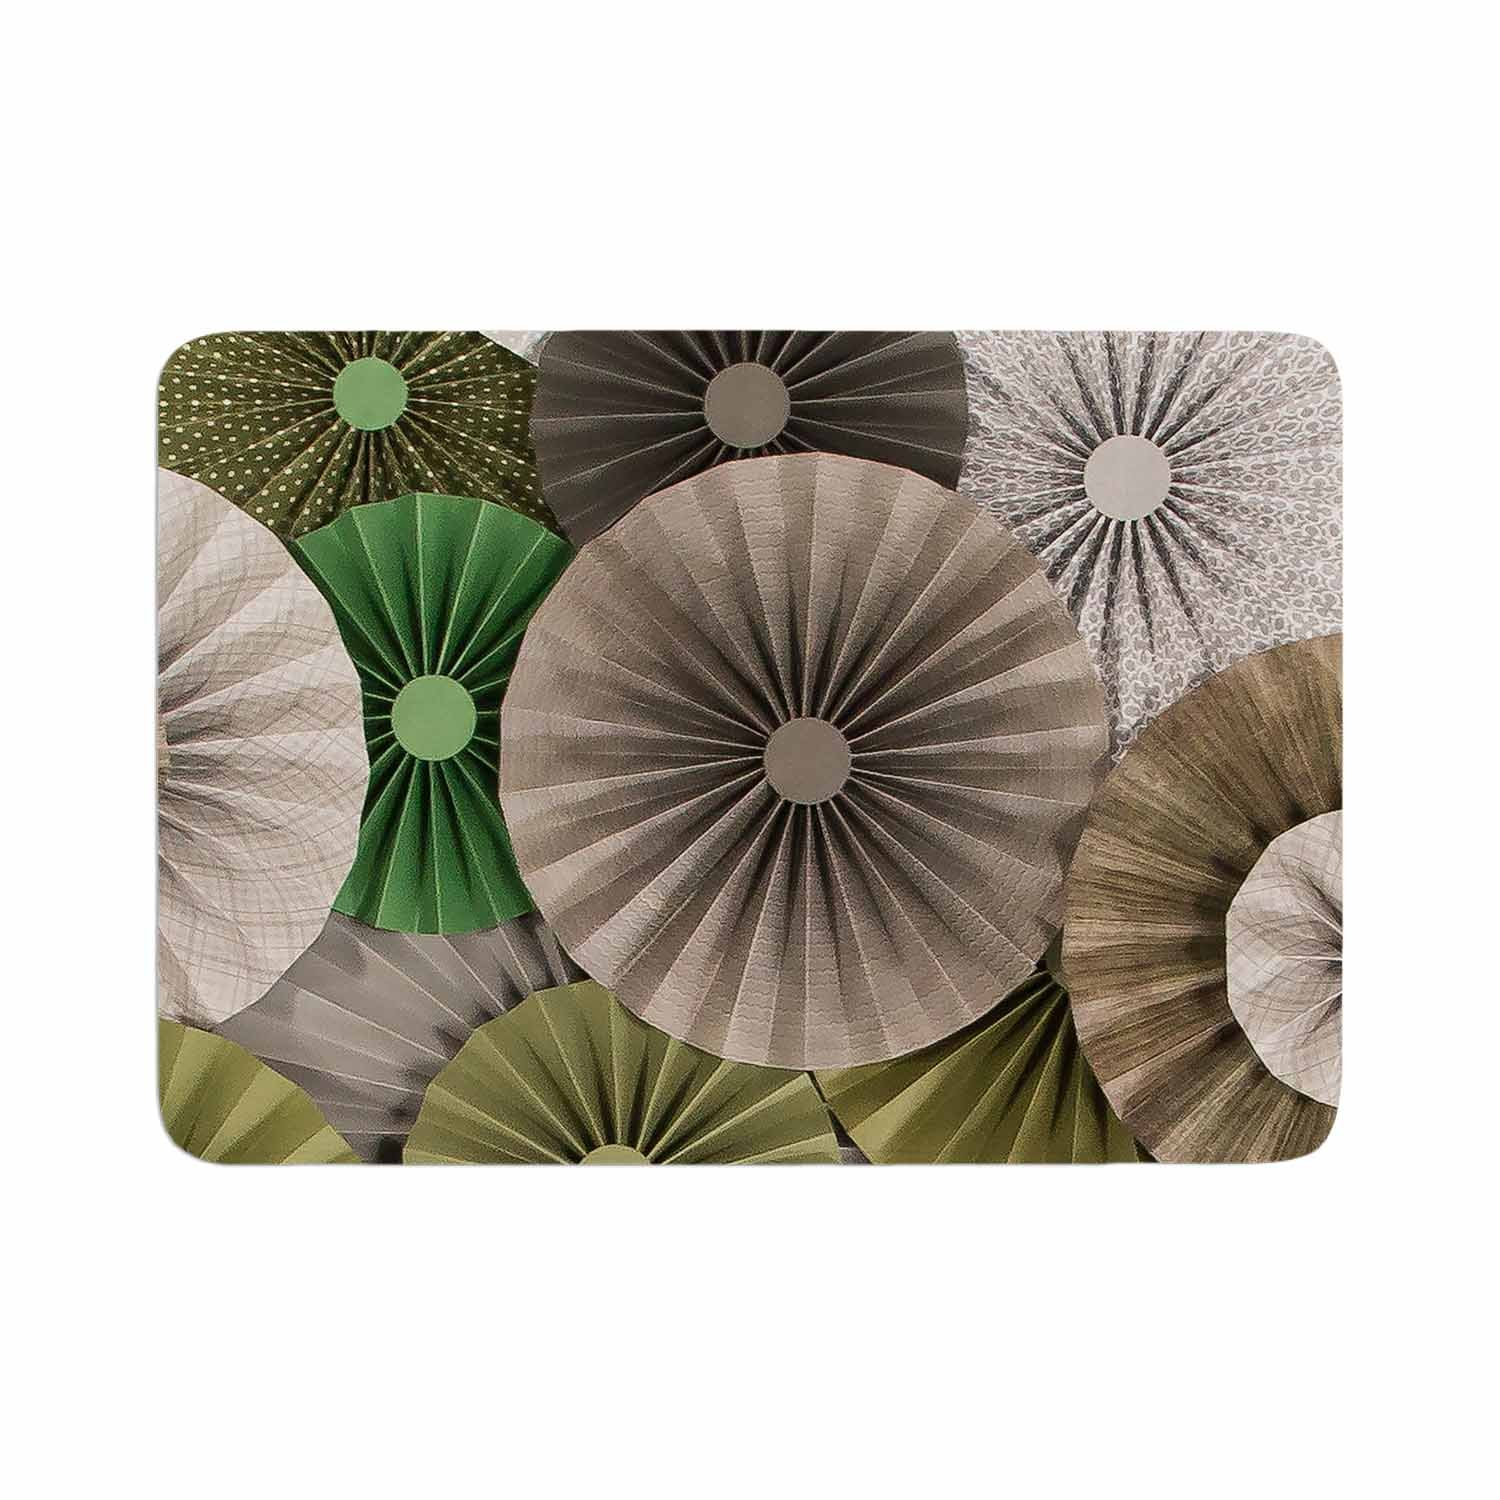 Kess InHouse Heidi Jennings Forest Green Abstract Memory Foam/ Bath Mat 24 by 36